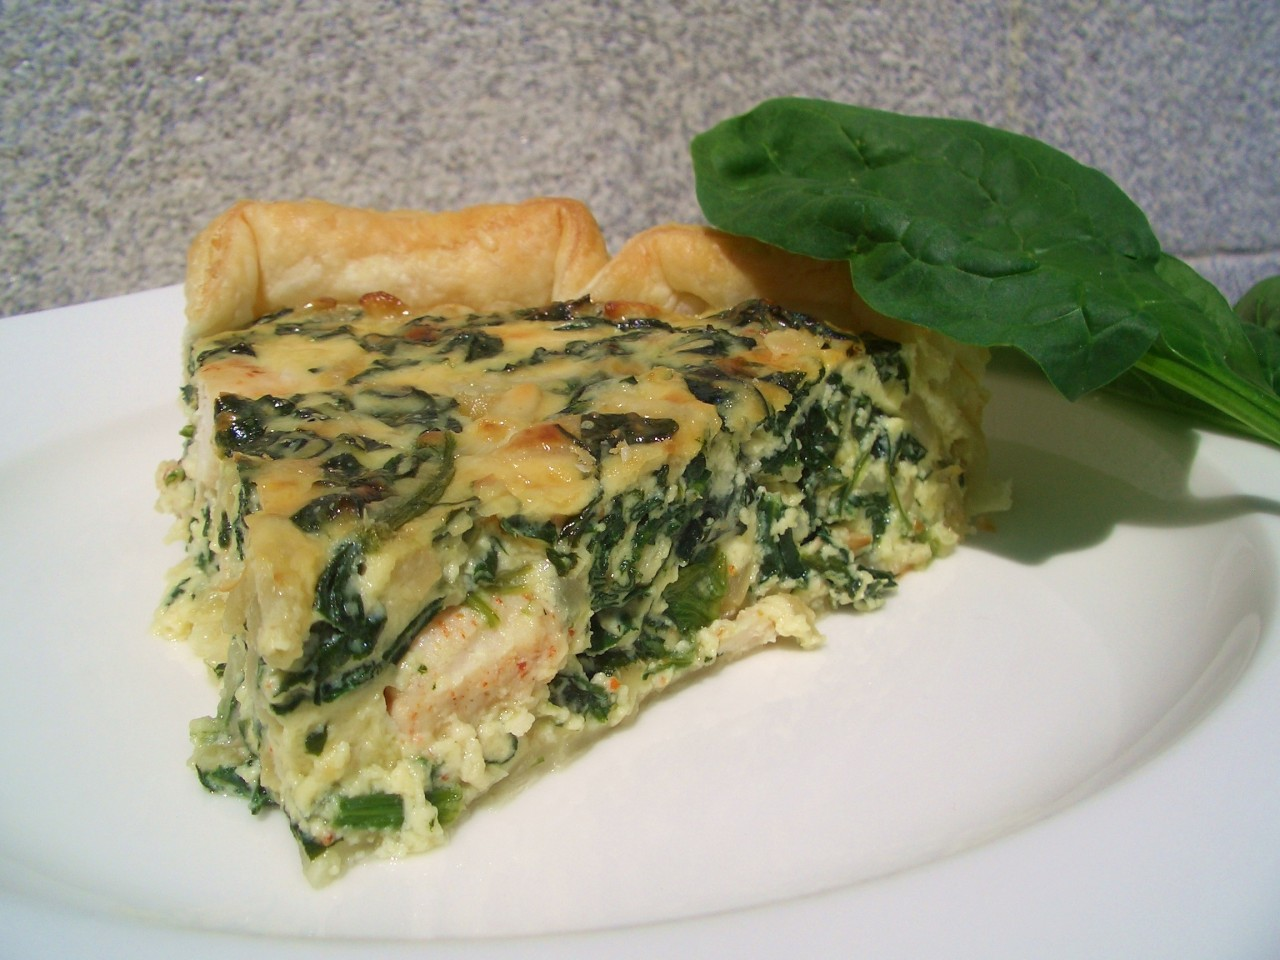 Tarta de Espinacas y Pollo – Spinach and Chicken Cake